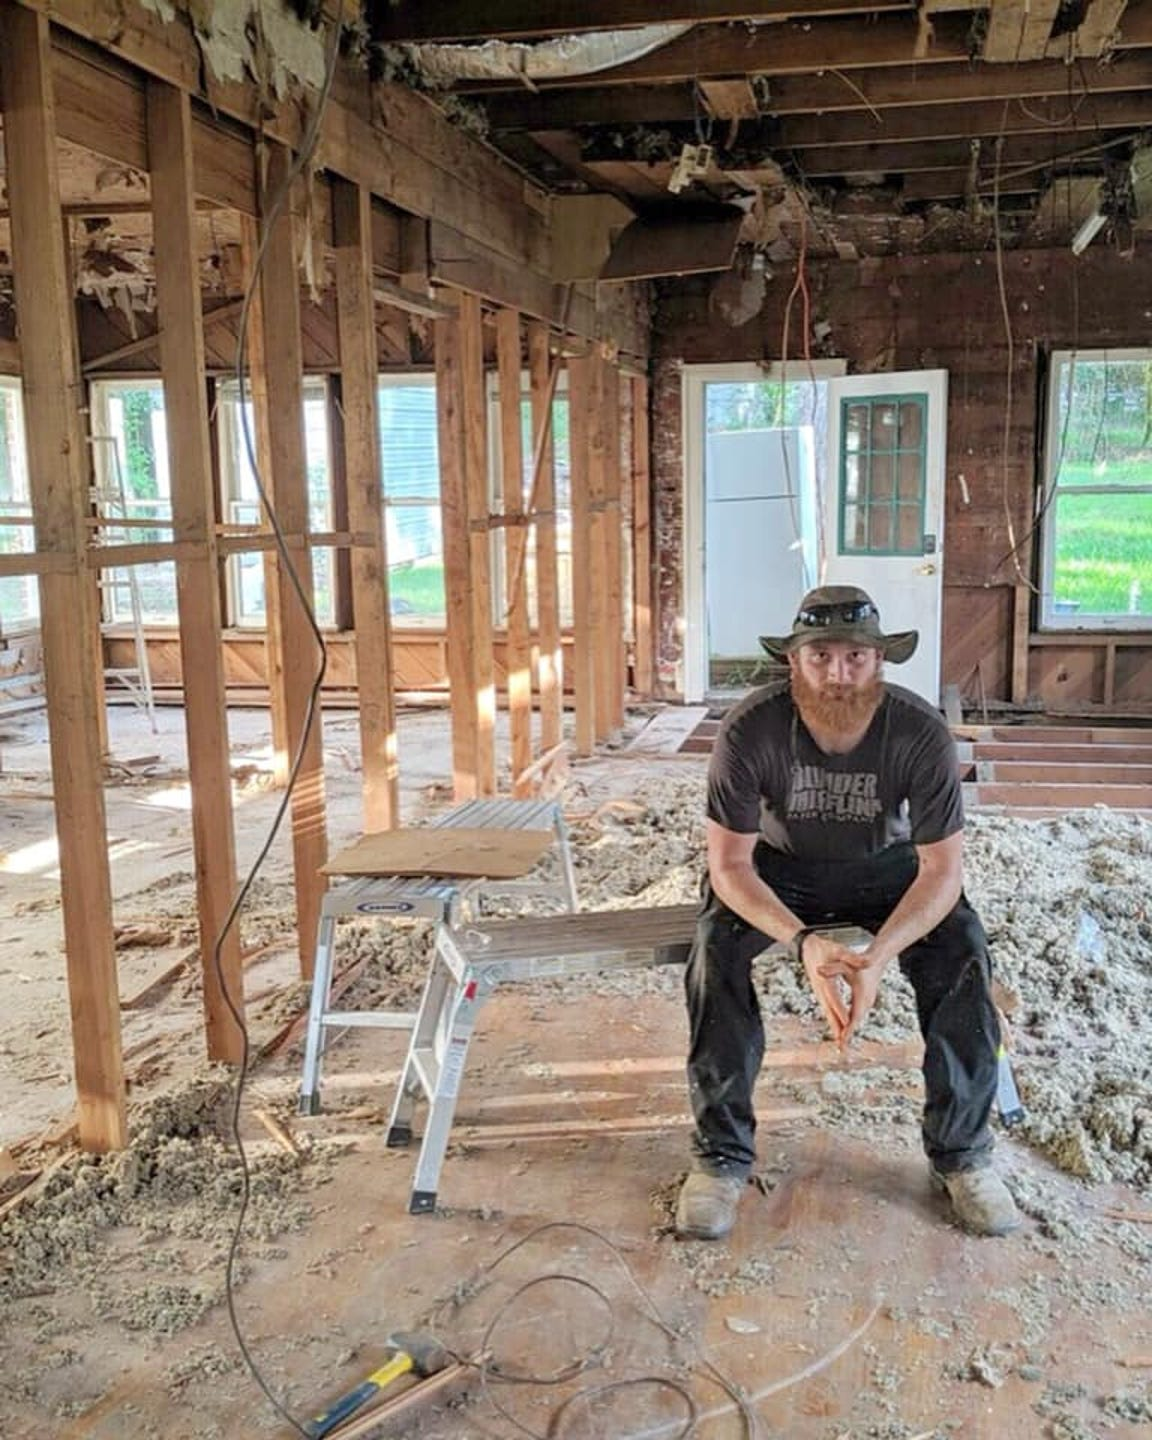 Photos from Catahoula Homes that show the renovation of the College Street house they recently completed in Highland.